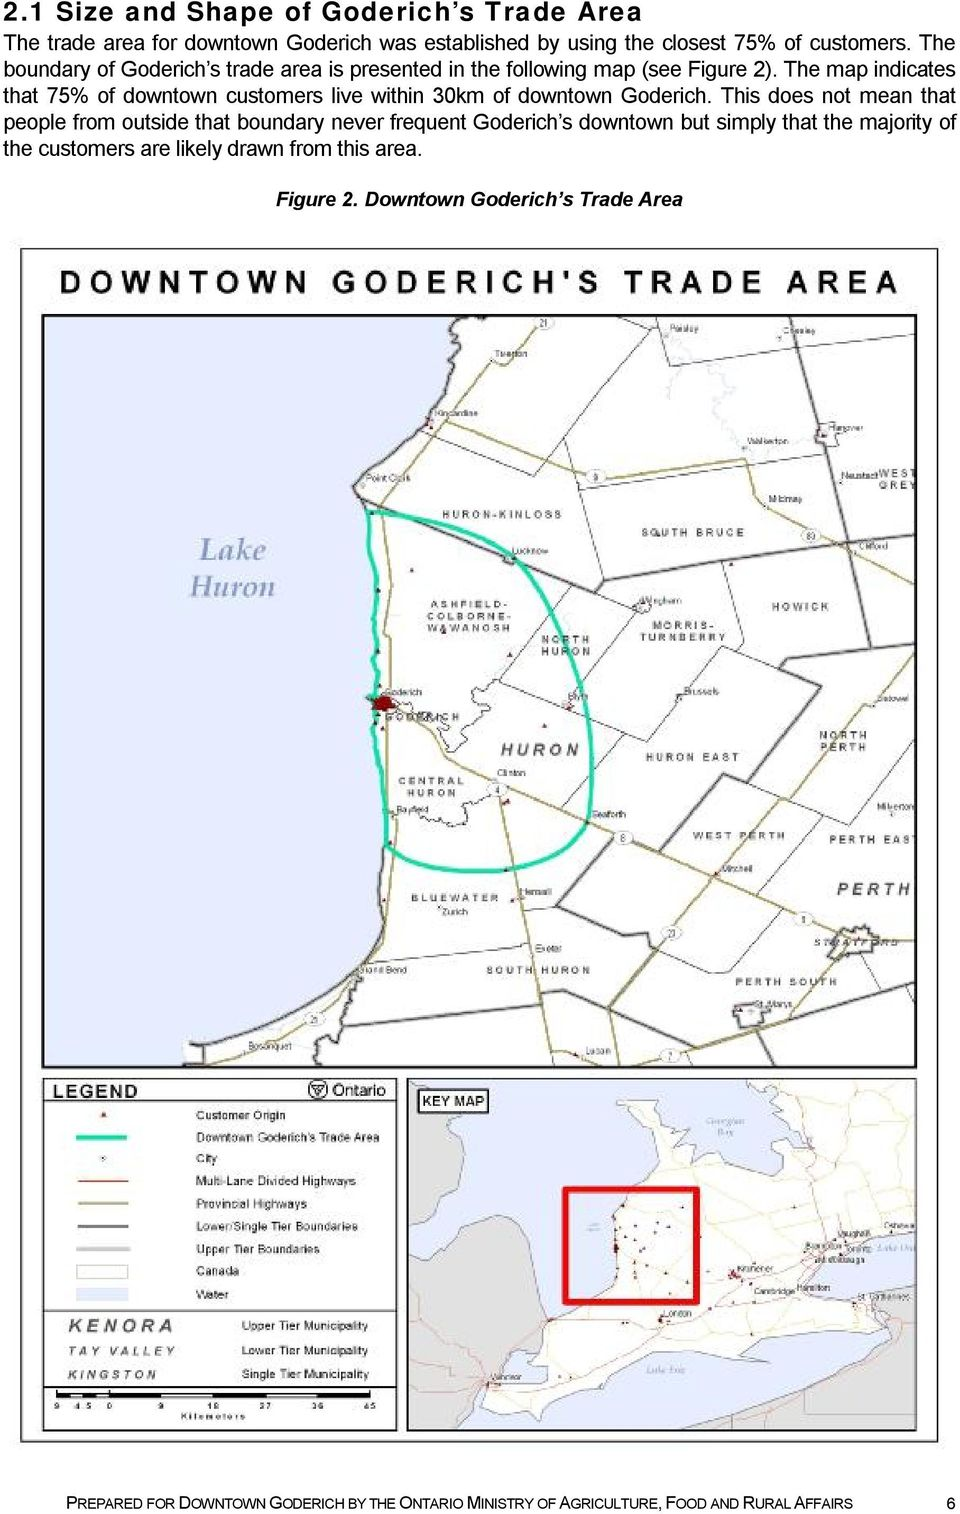 The map indicates that 75% of downtown customers live within 30km of downtown Goderich.